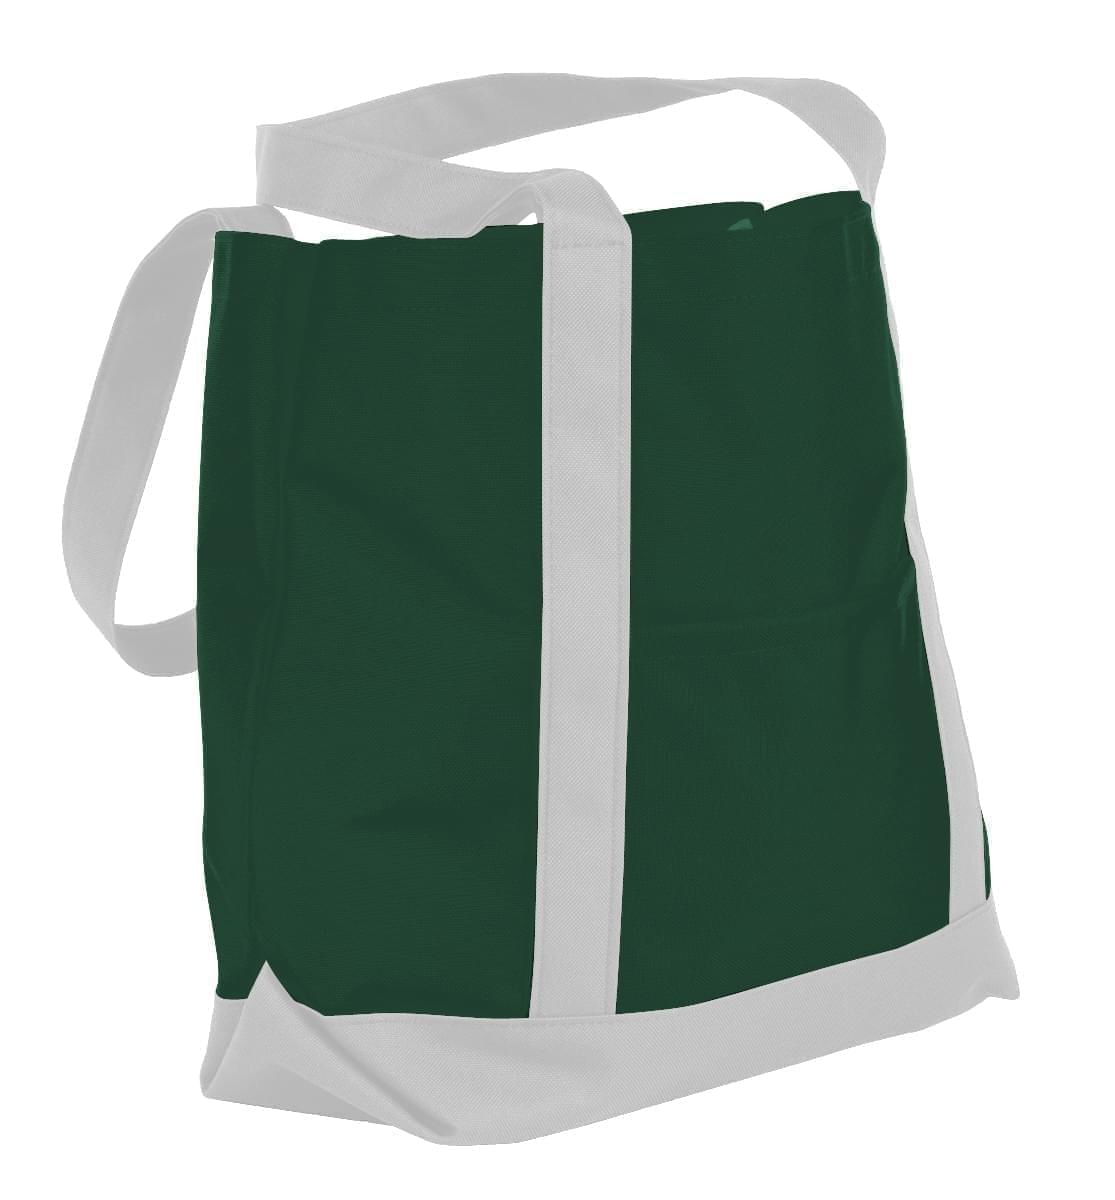 USA Made Canvas Fashion Tote Bags, Hunter Green-White, XAACL1UAIP